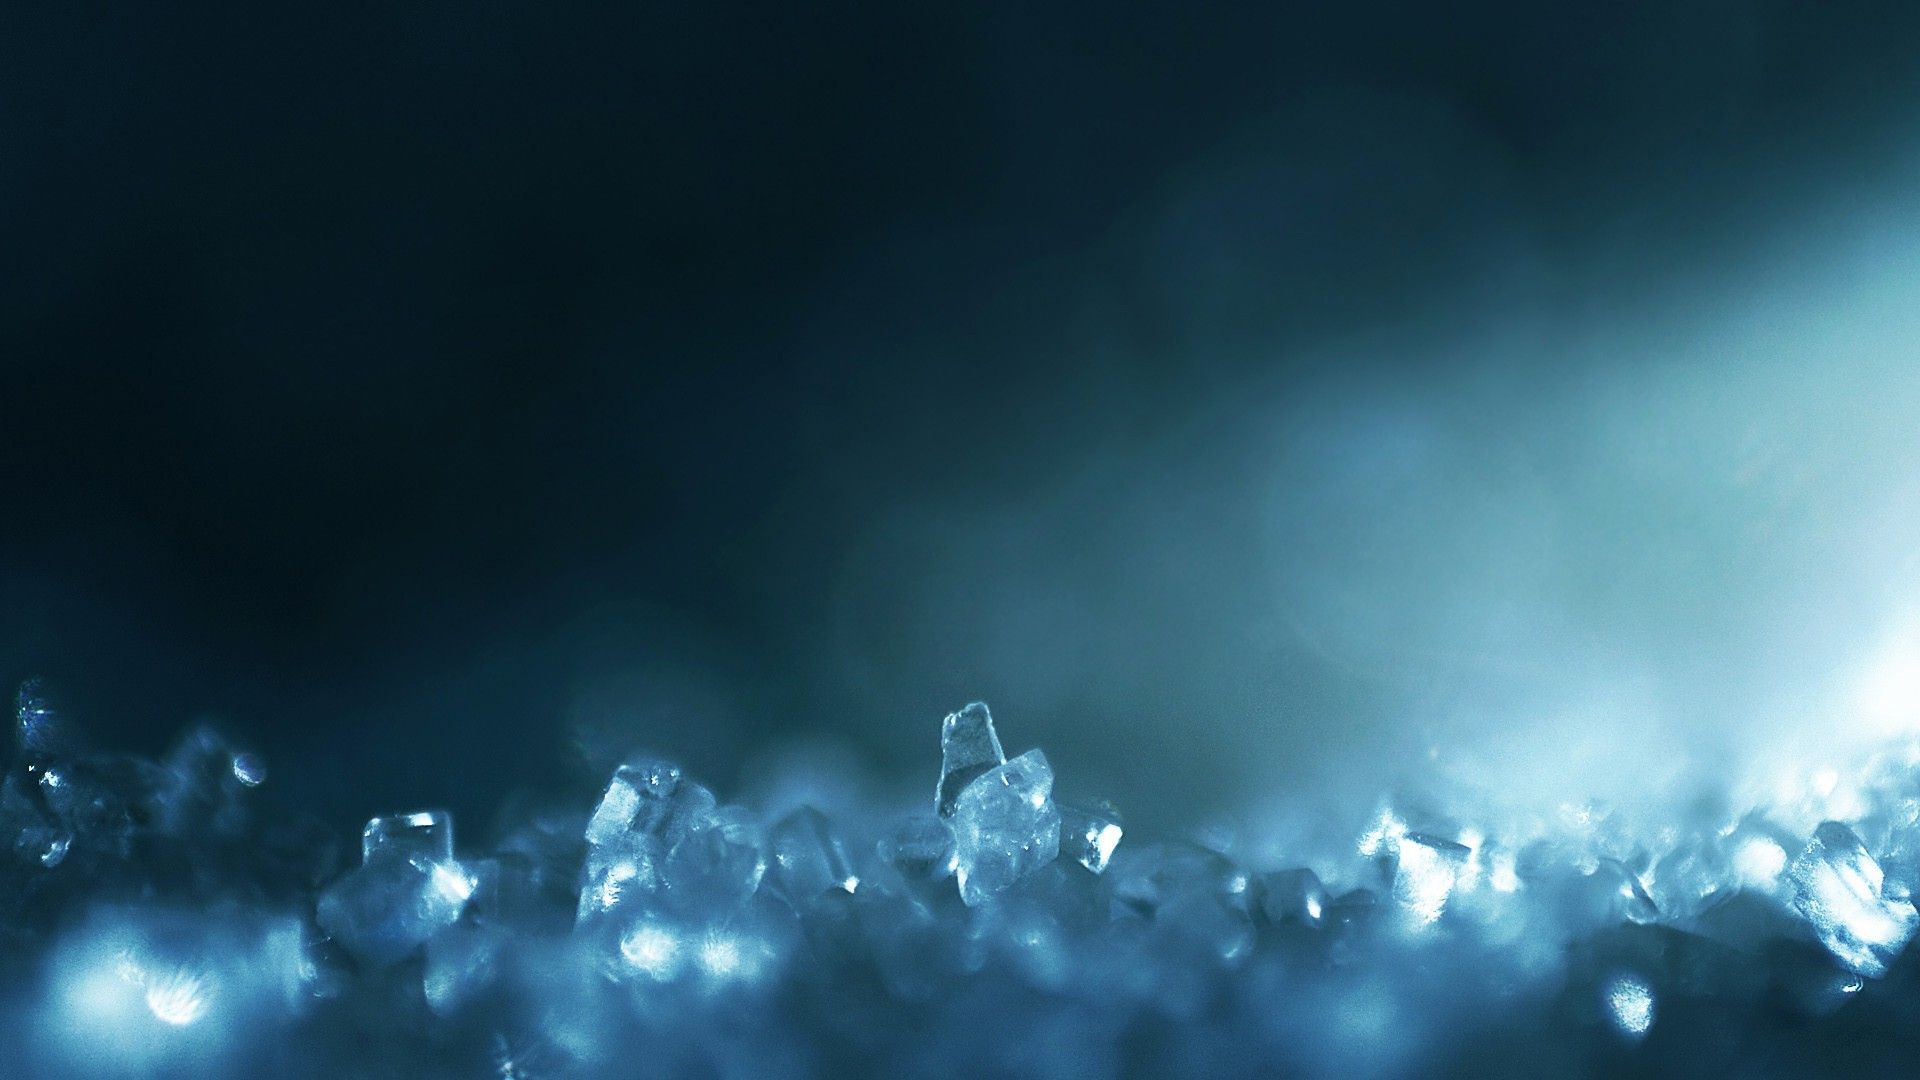 ... Wallpapers Ice Crystal Wallpapers